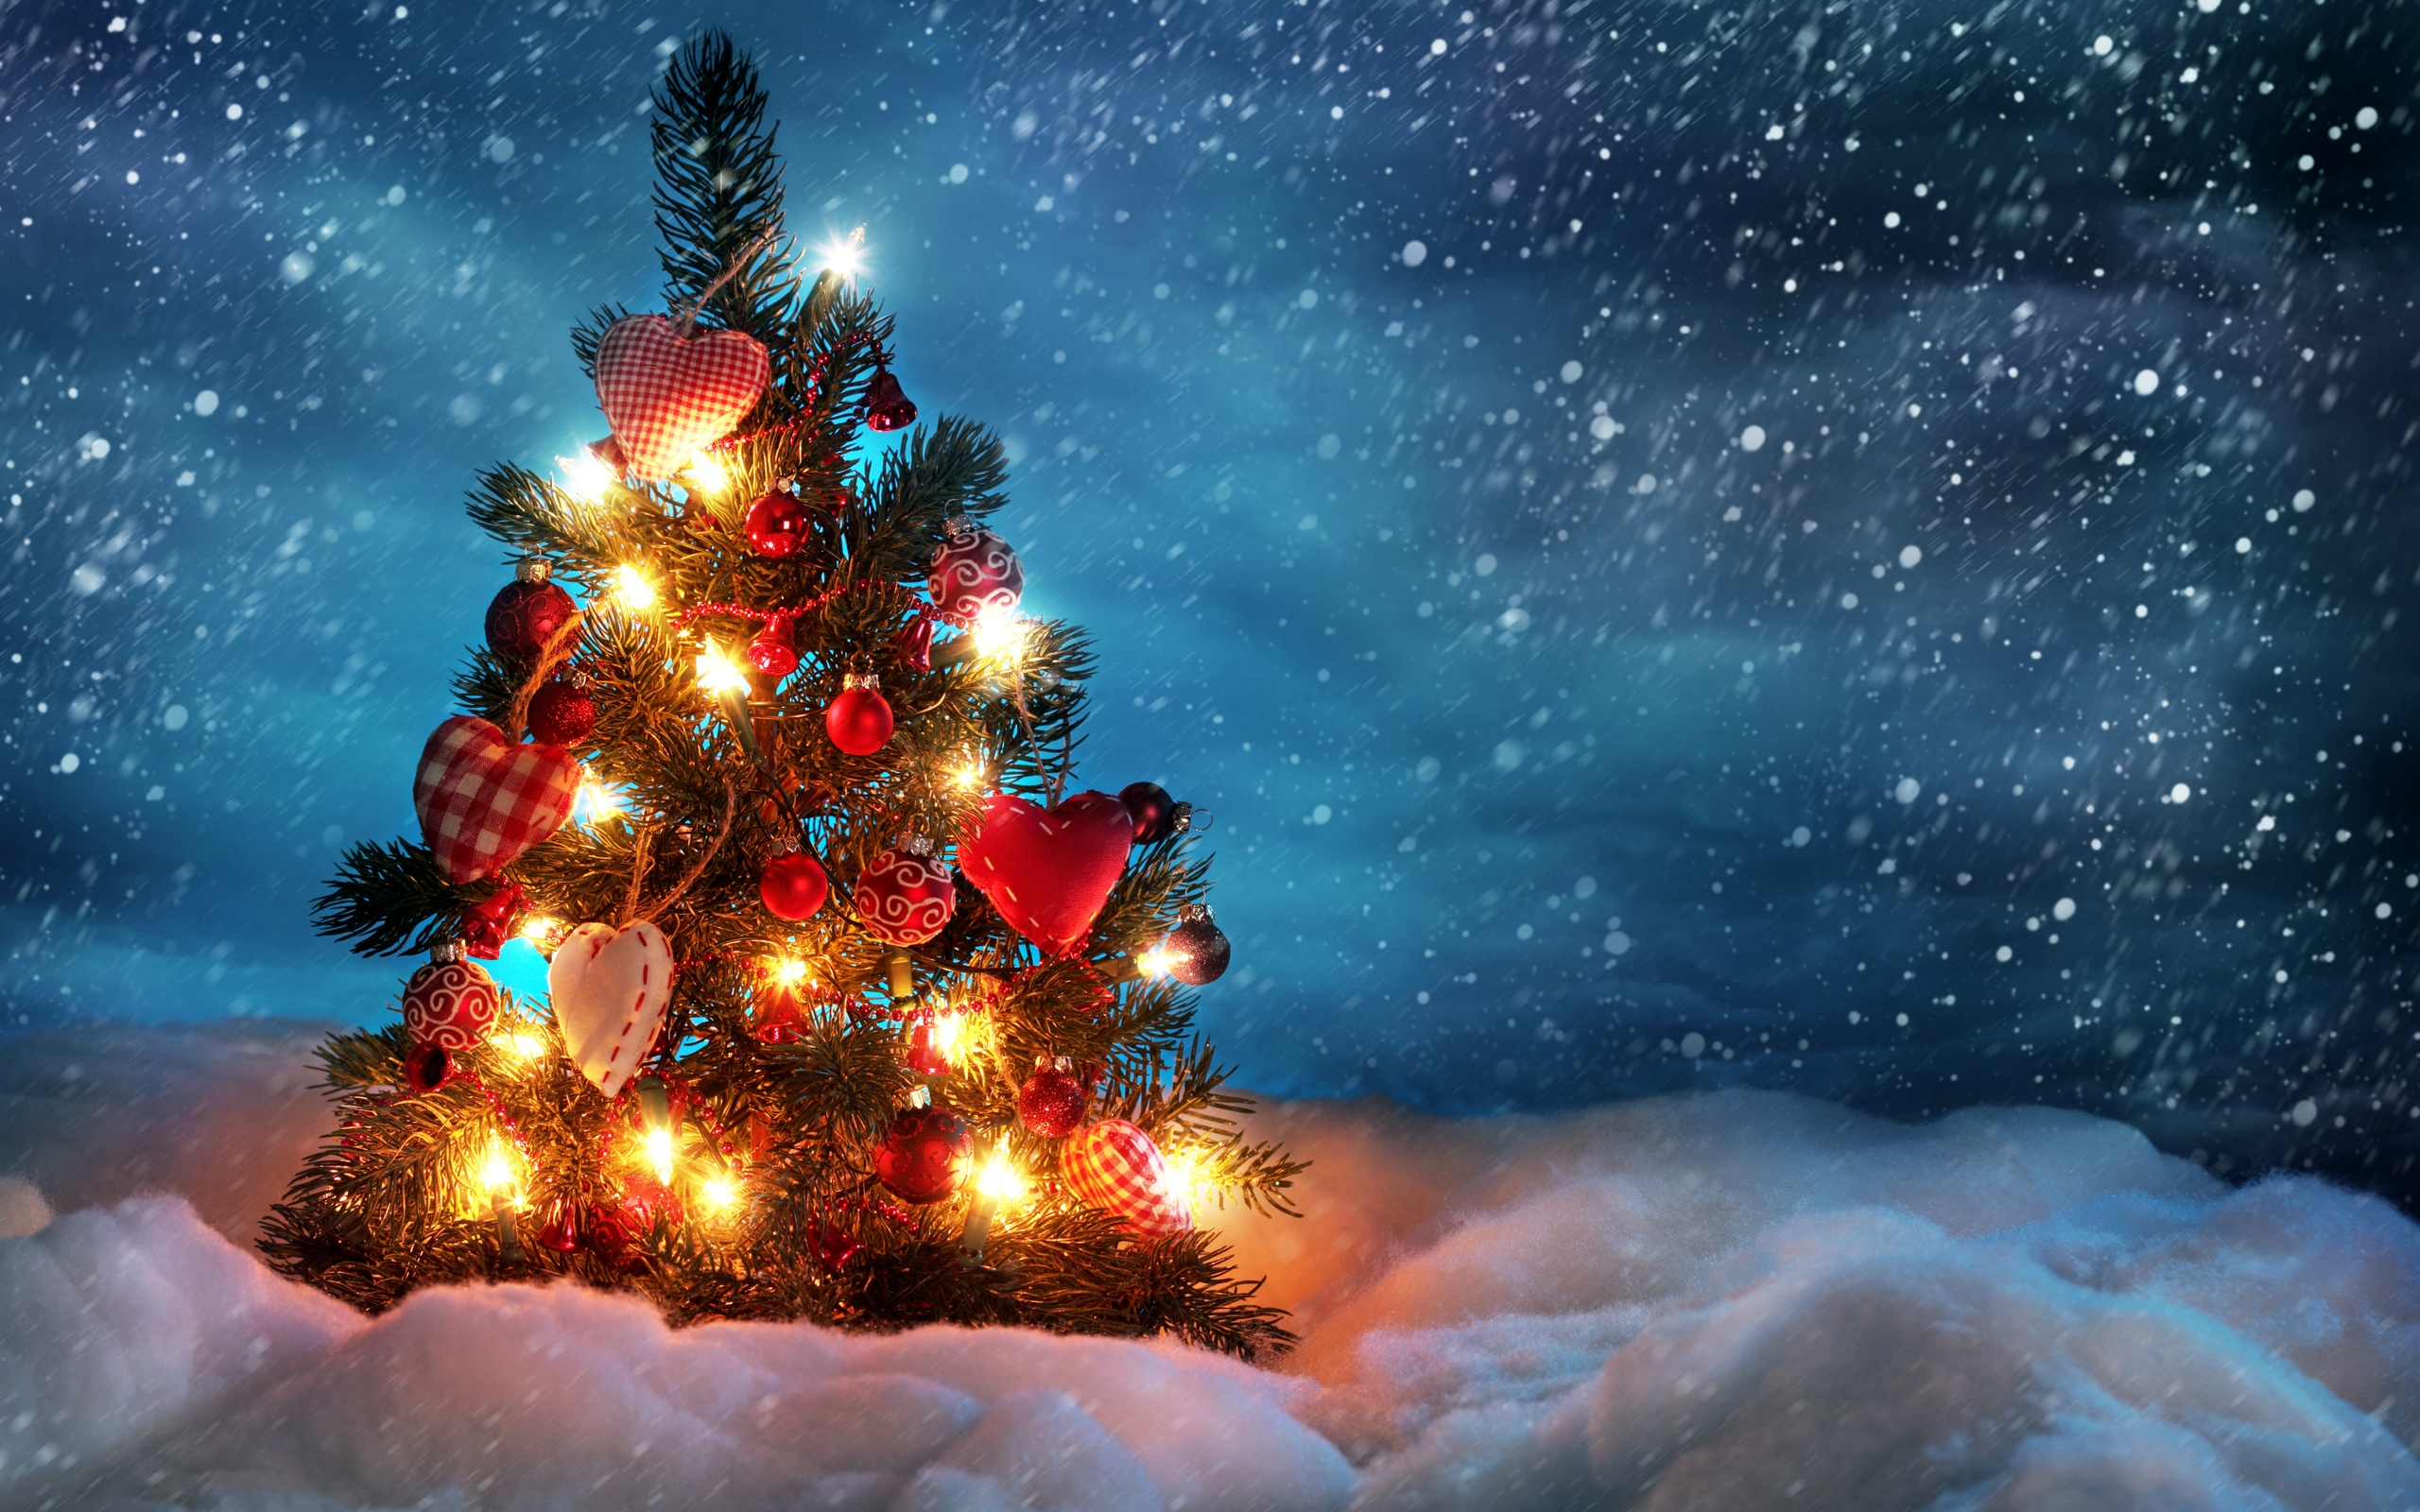 3d-Christmas-Wallpaper-image